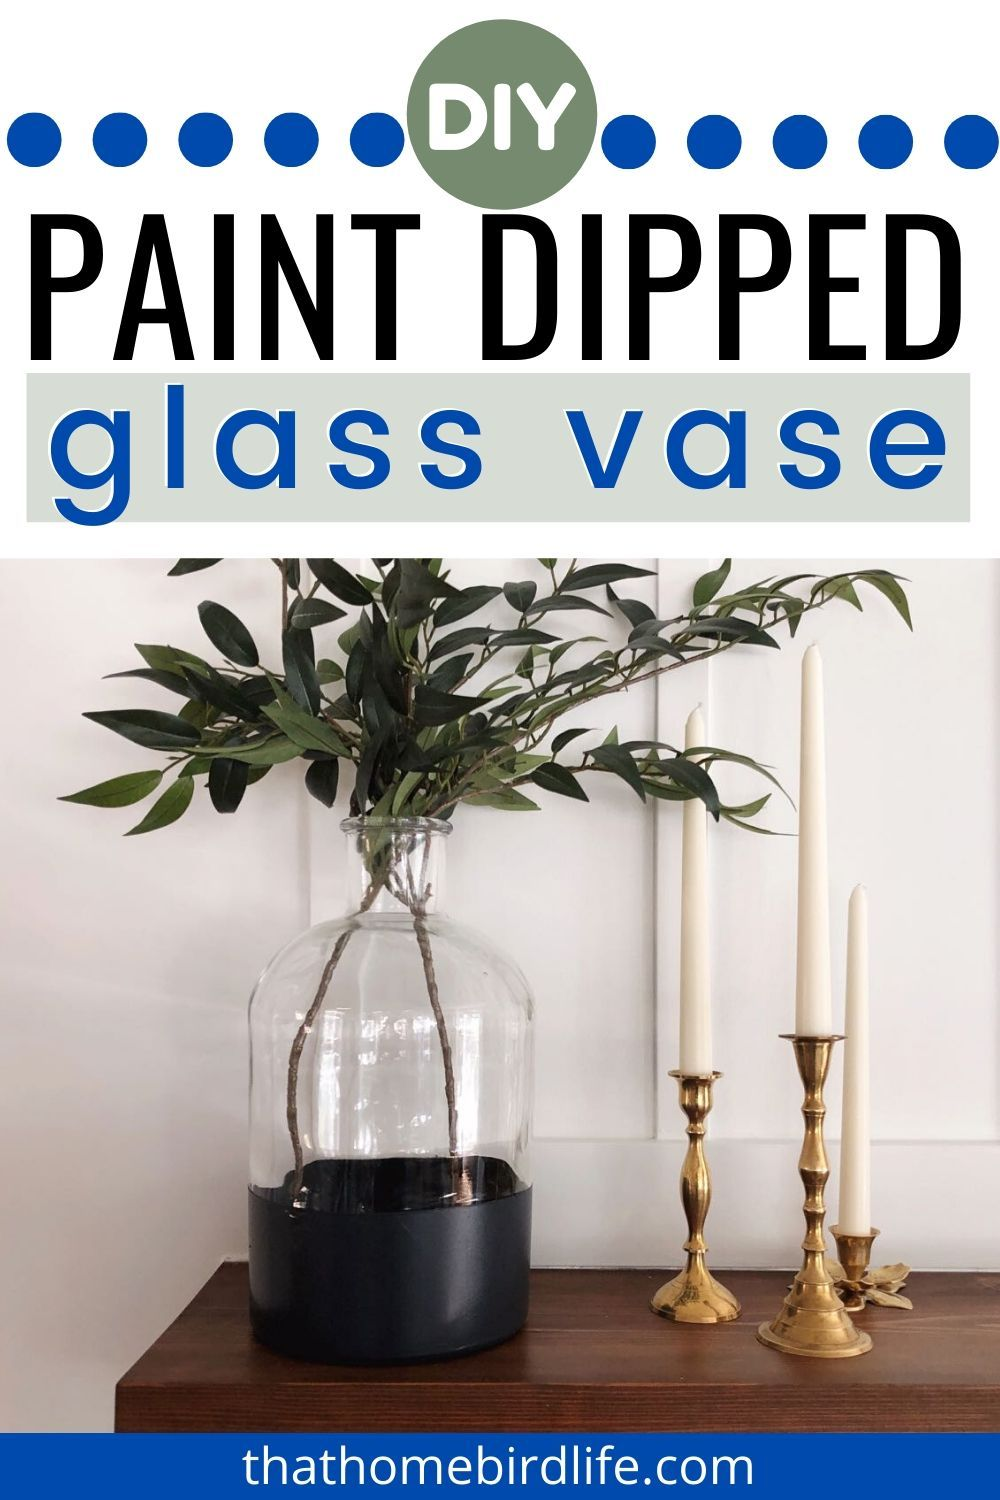 How to Make a DIY Paint Dipped Glass Vase. Upgrade a boring glass vase with this quick and easy tutorial. Create a dipped look with spray paint and achieve a high-end look for a fraction of the cost! | Home Projects - DIY, Organization & Decor | That Homebird Life Blog | #diy #diyhomedecor #craftideas #diytutorial